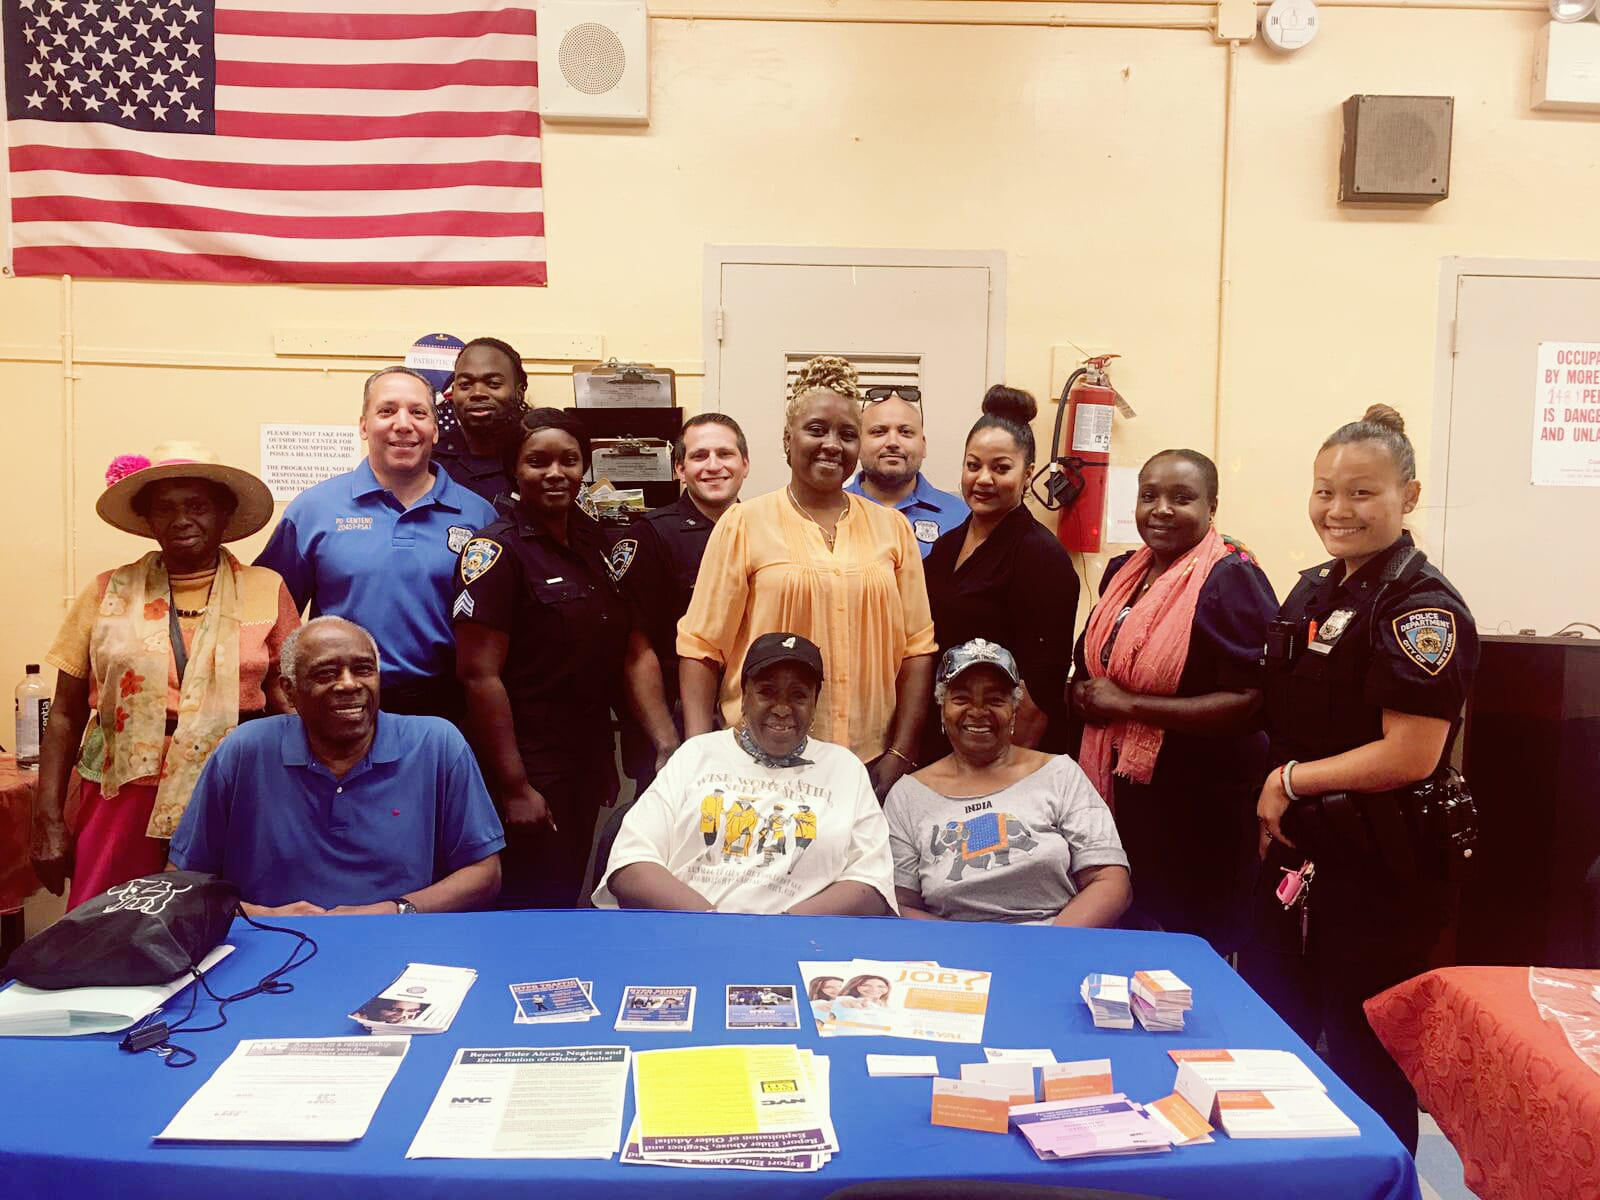 Co-hosting a workshop on Elder Abuse and Scam Alert in conjunction with the NYPD, Safe Horizon and Brooklyn DA's Office at Glenwood Senior Center.